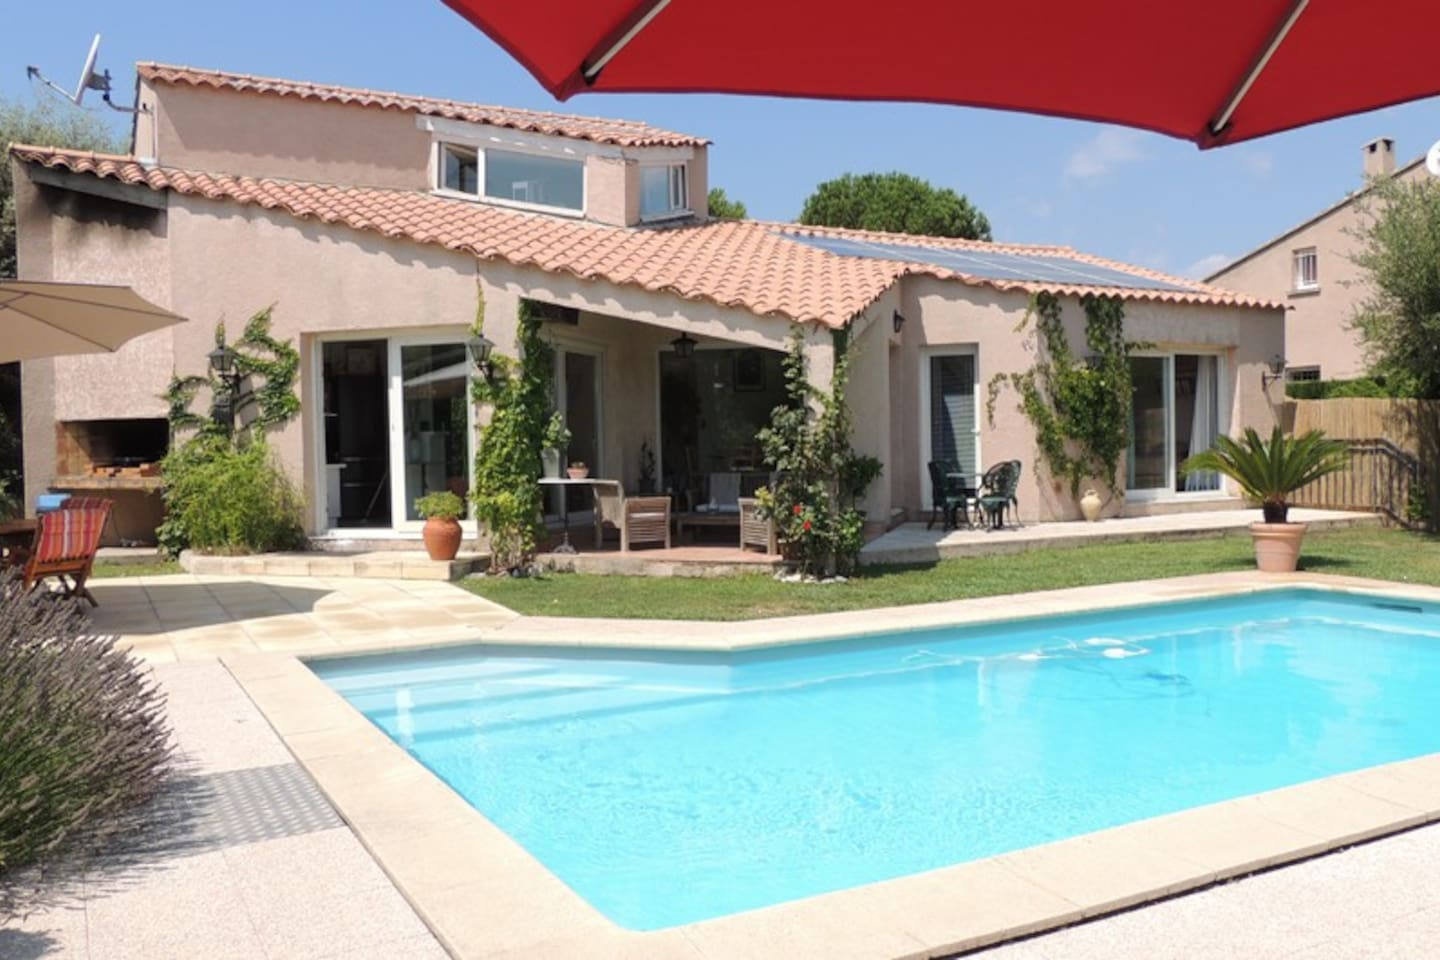 Beautiful house swiming pool France